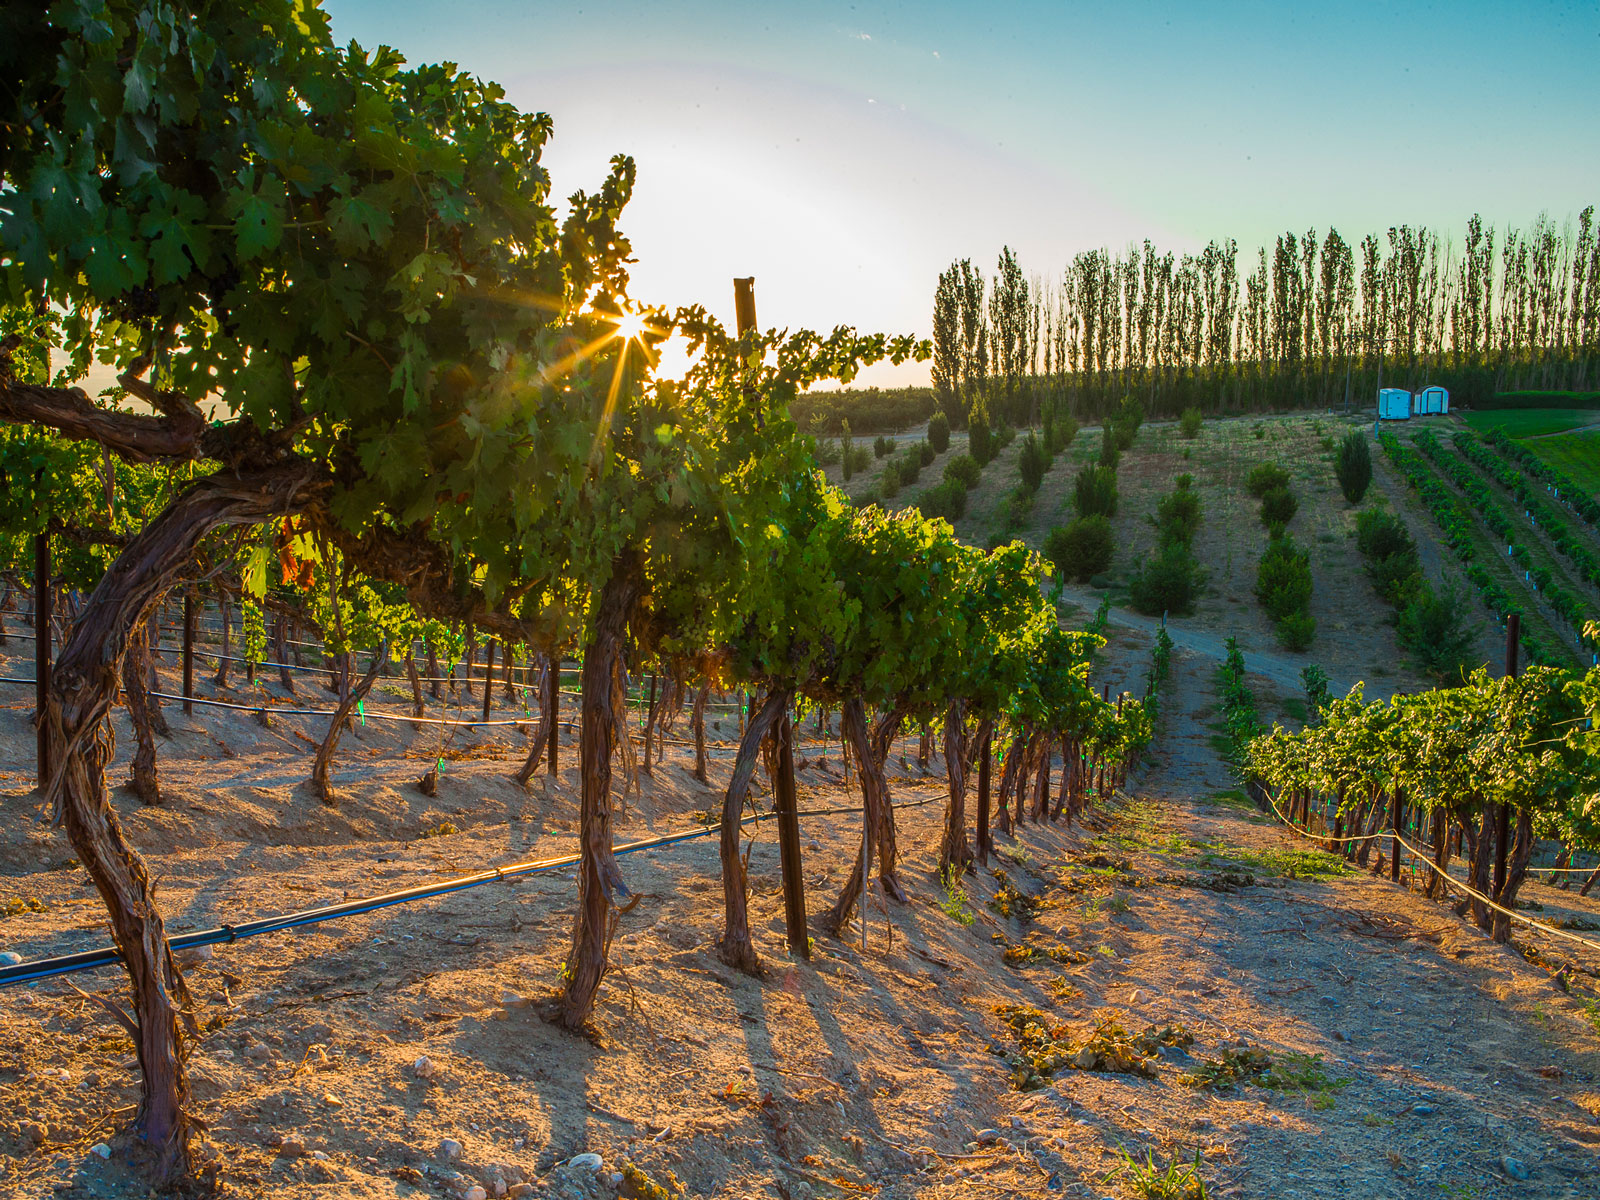 America's Next Must-Visit Wine Region Is Where You'd Least Expect It